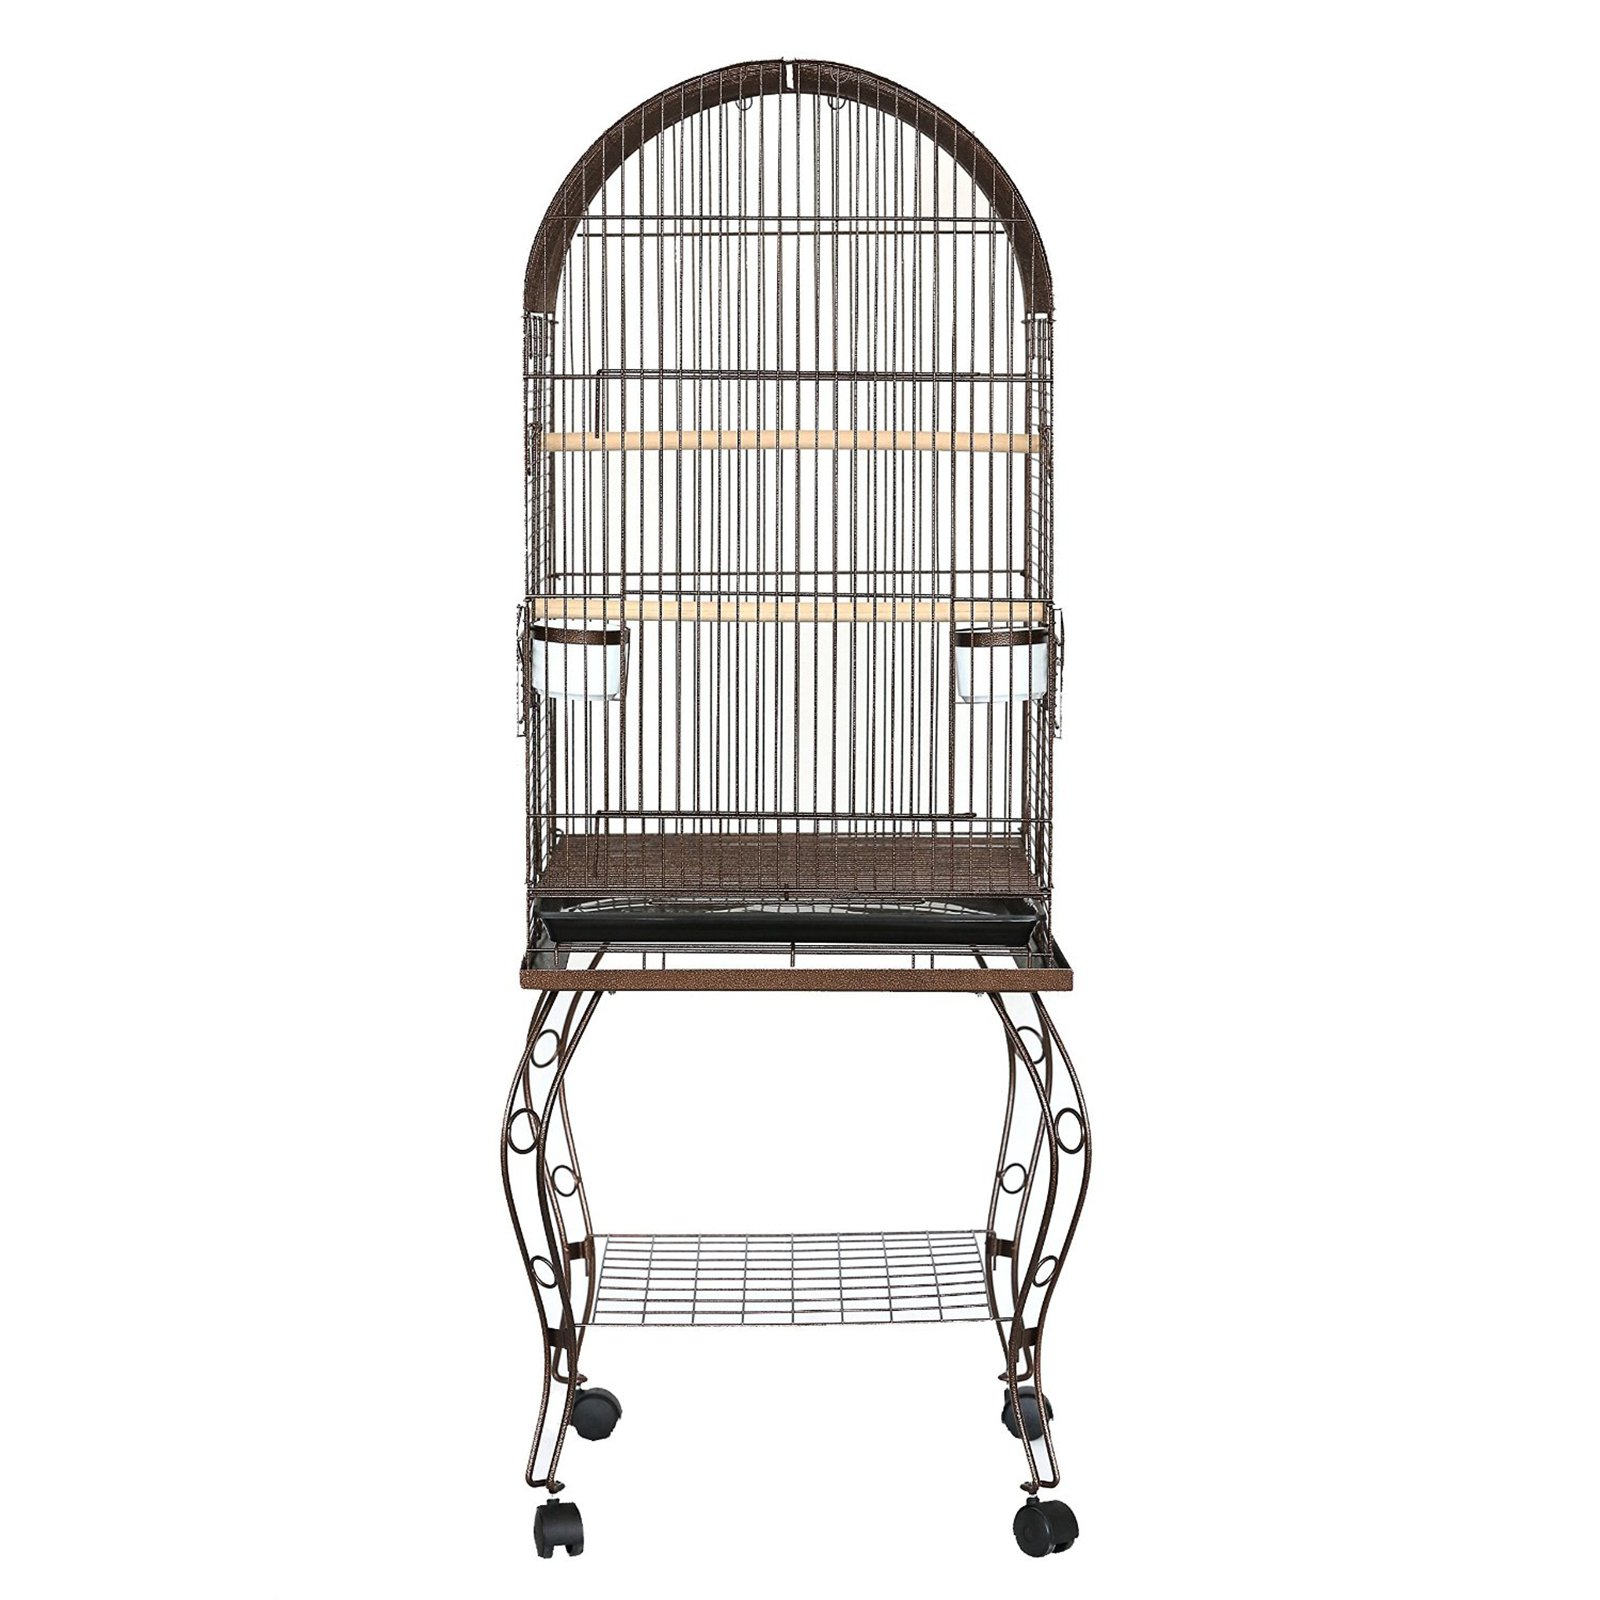 YML 600ACP 20-Inch Dometop Parrot Cage with Stand, Copper